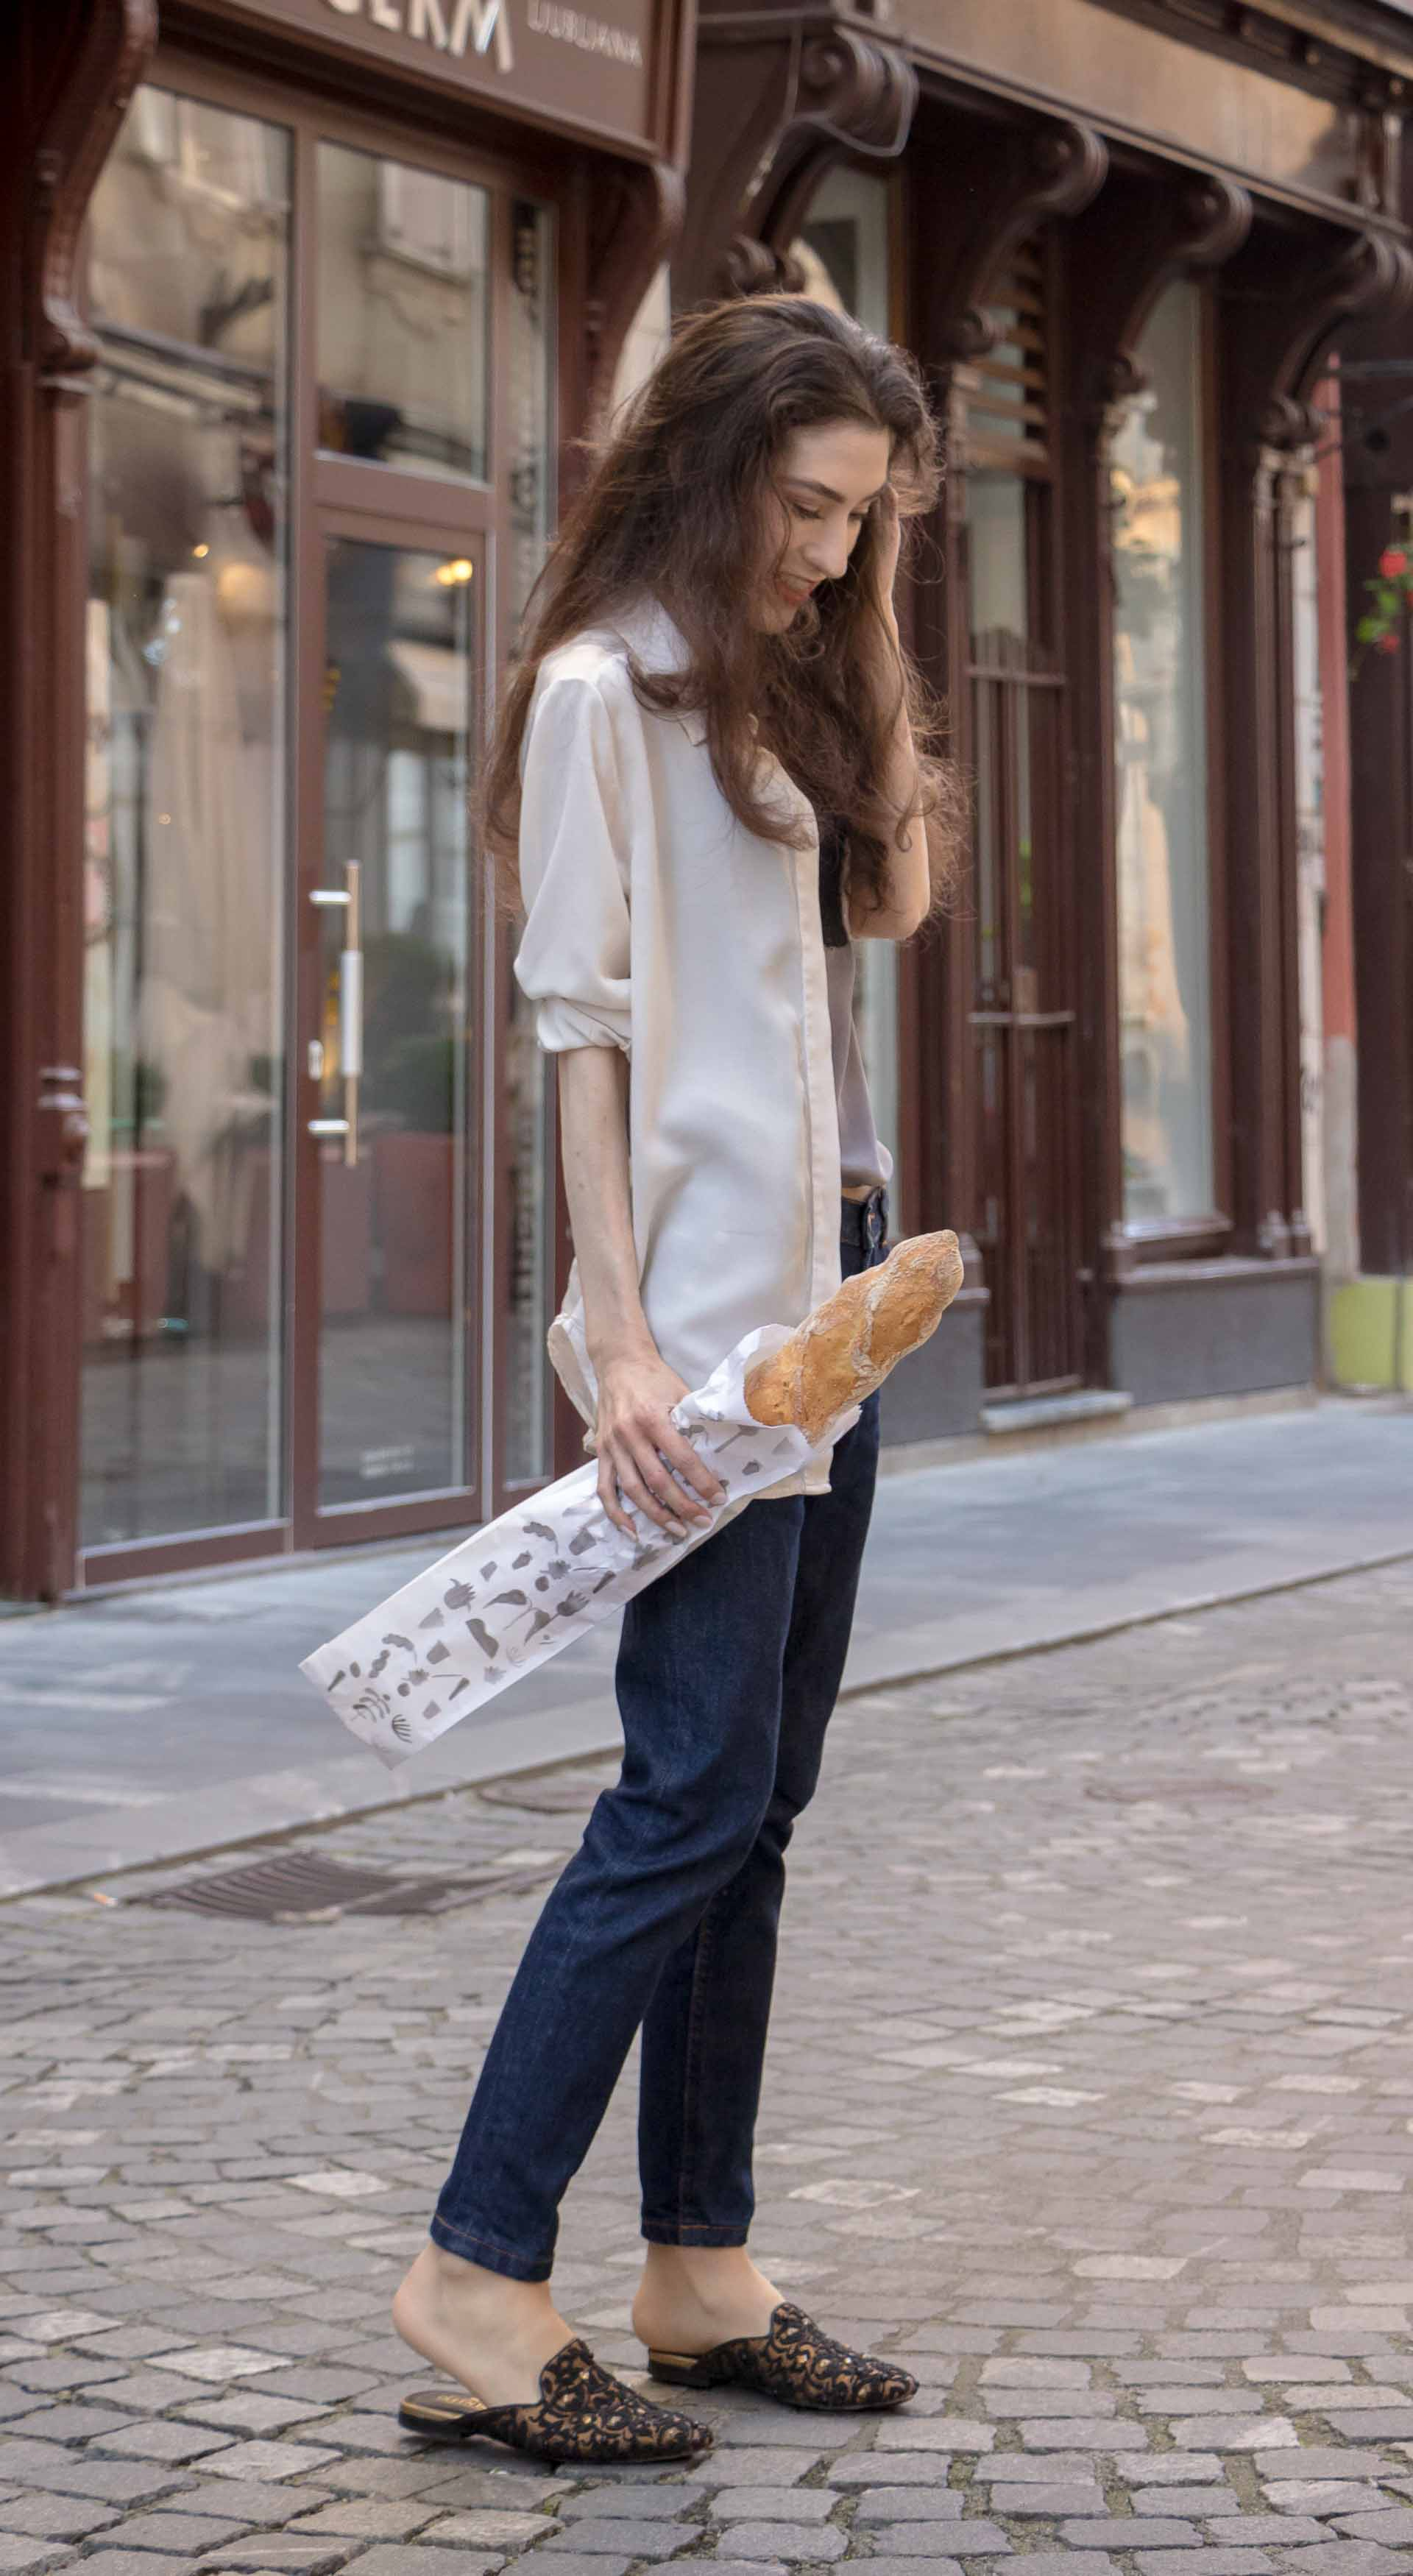 Fashion Blogger Veronika Lipar of Brunette from Wall Street dressed in white sheer shirt with transparent back from Sandro Paris, grey silk slip top, A.P.C. dark denim jeans, mules, pink Furla shoulder bag, while holding a baguette on the street